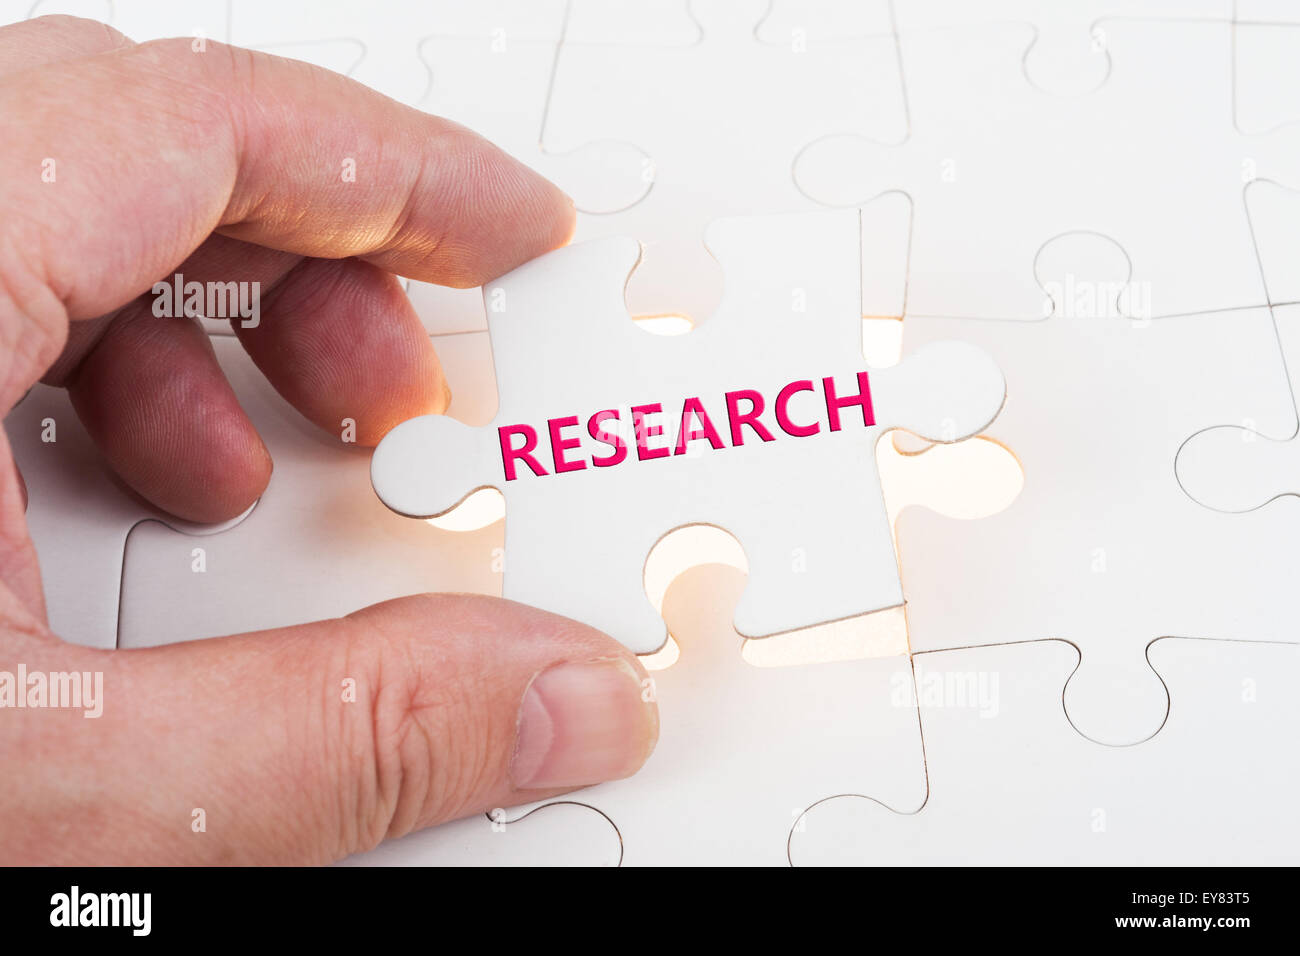 Research white paper group